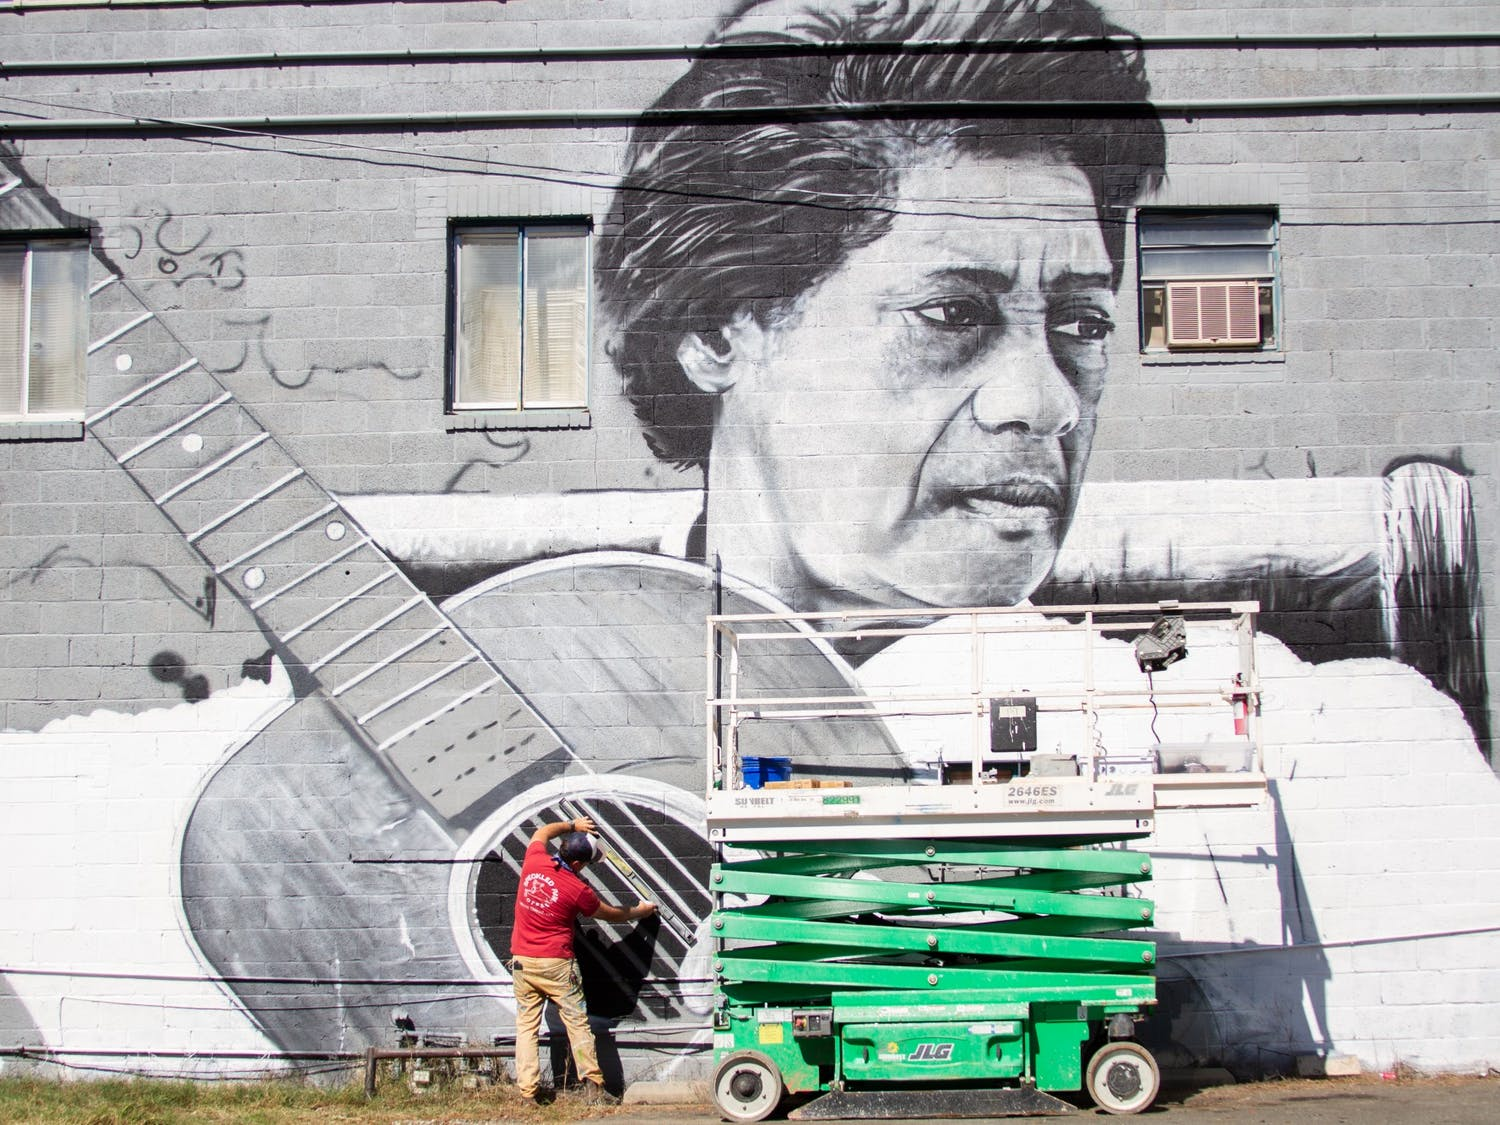 Muralist Scott Nurkin works on a mural of legendary blues musician Elizabeth Cotton on Merritt Mill Road on Wednesday, Oct. 14, 2020. This mural is part of a wider effort called the North Carolina Musicians Mural Project.